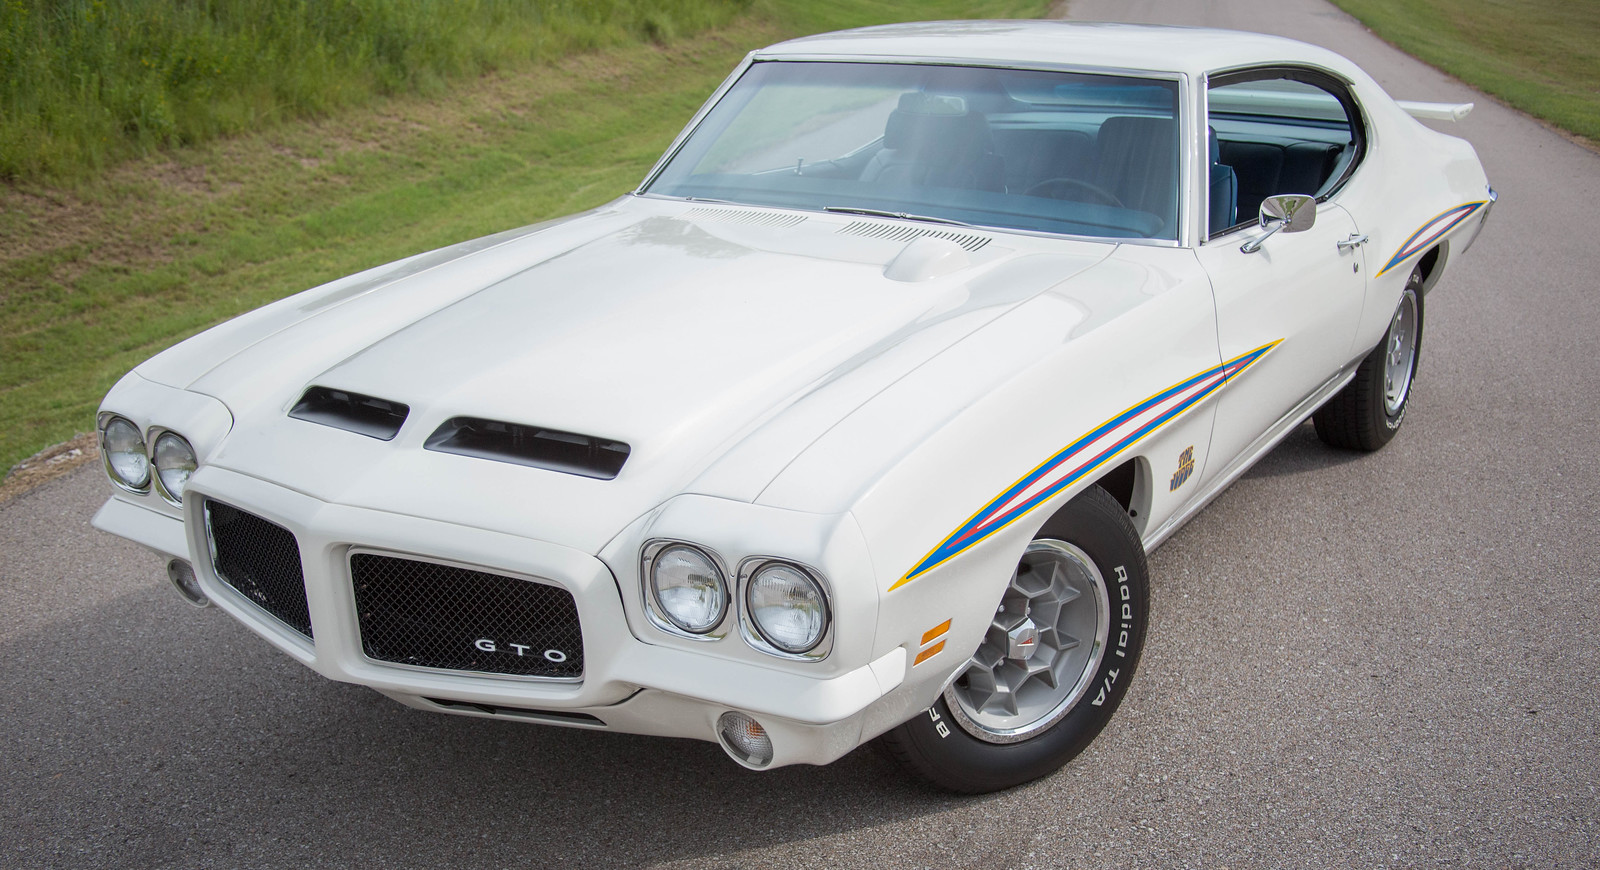 Muscle Car Pics >> #583 71 GTO Judge 455 4-Speed For Sale | Flickr